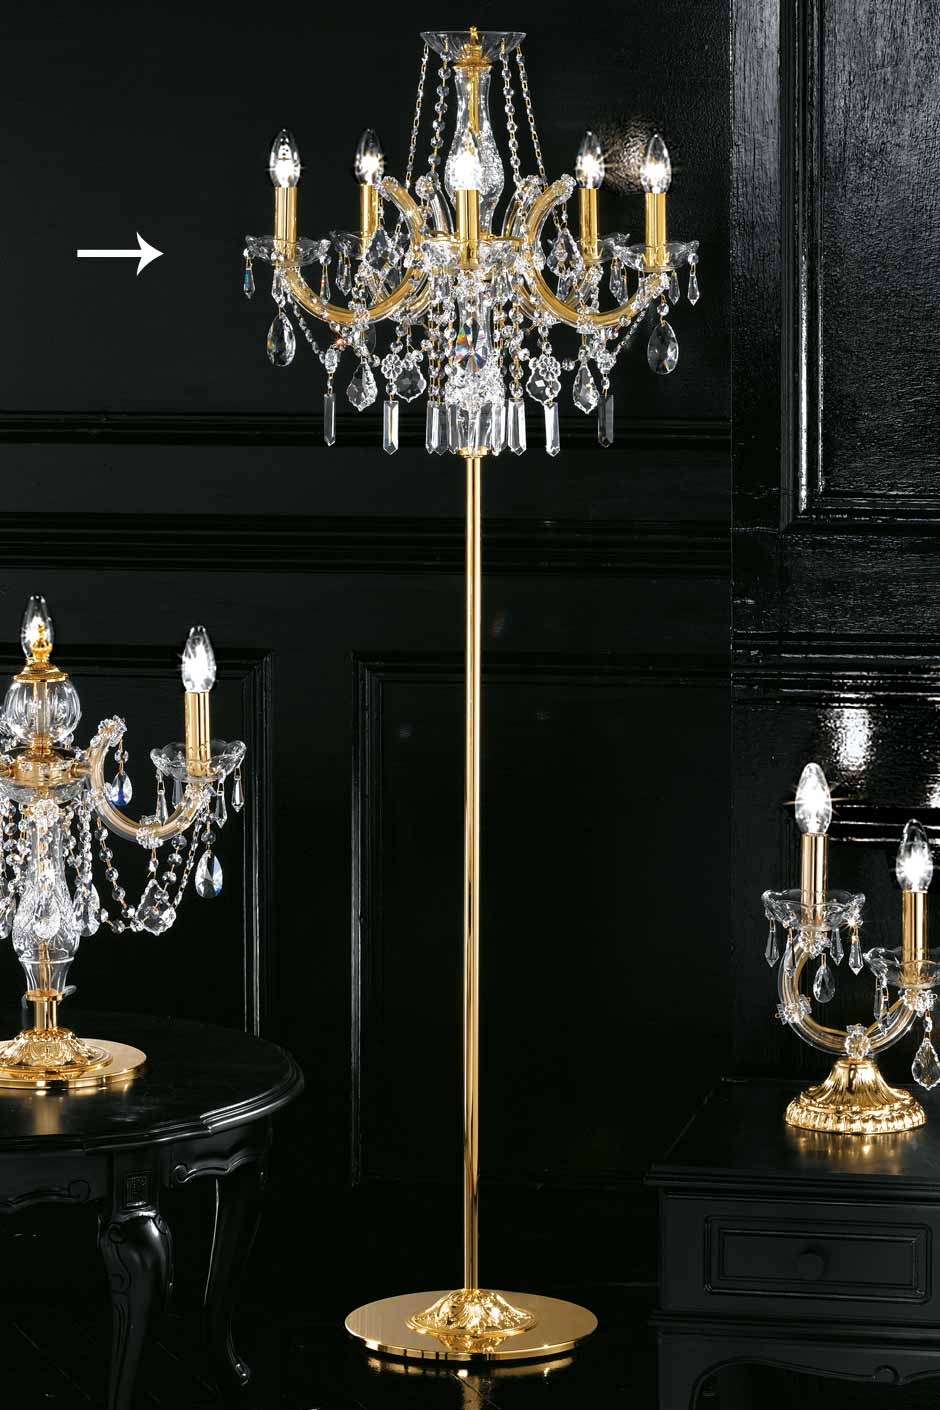 5 light candelabra style standard lamp in gold plated metal and clear crystal